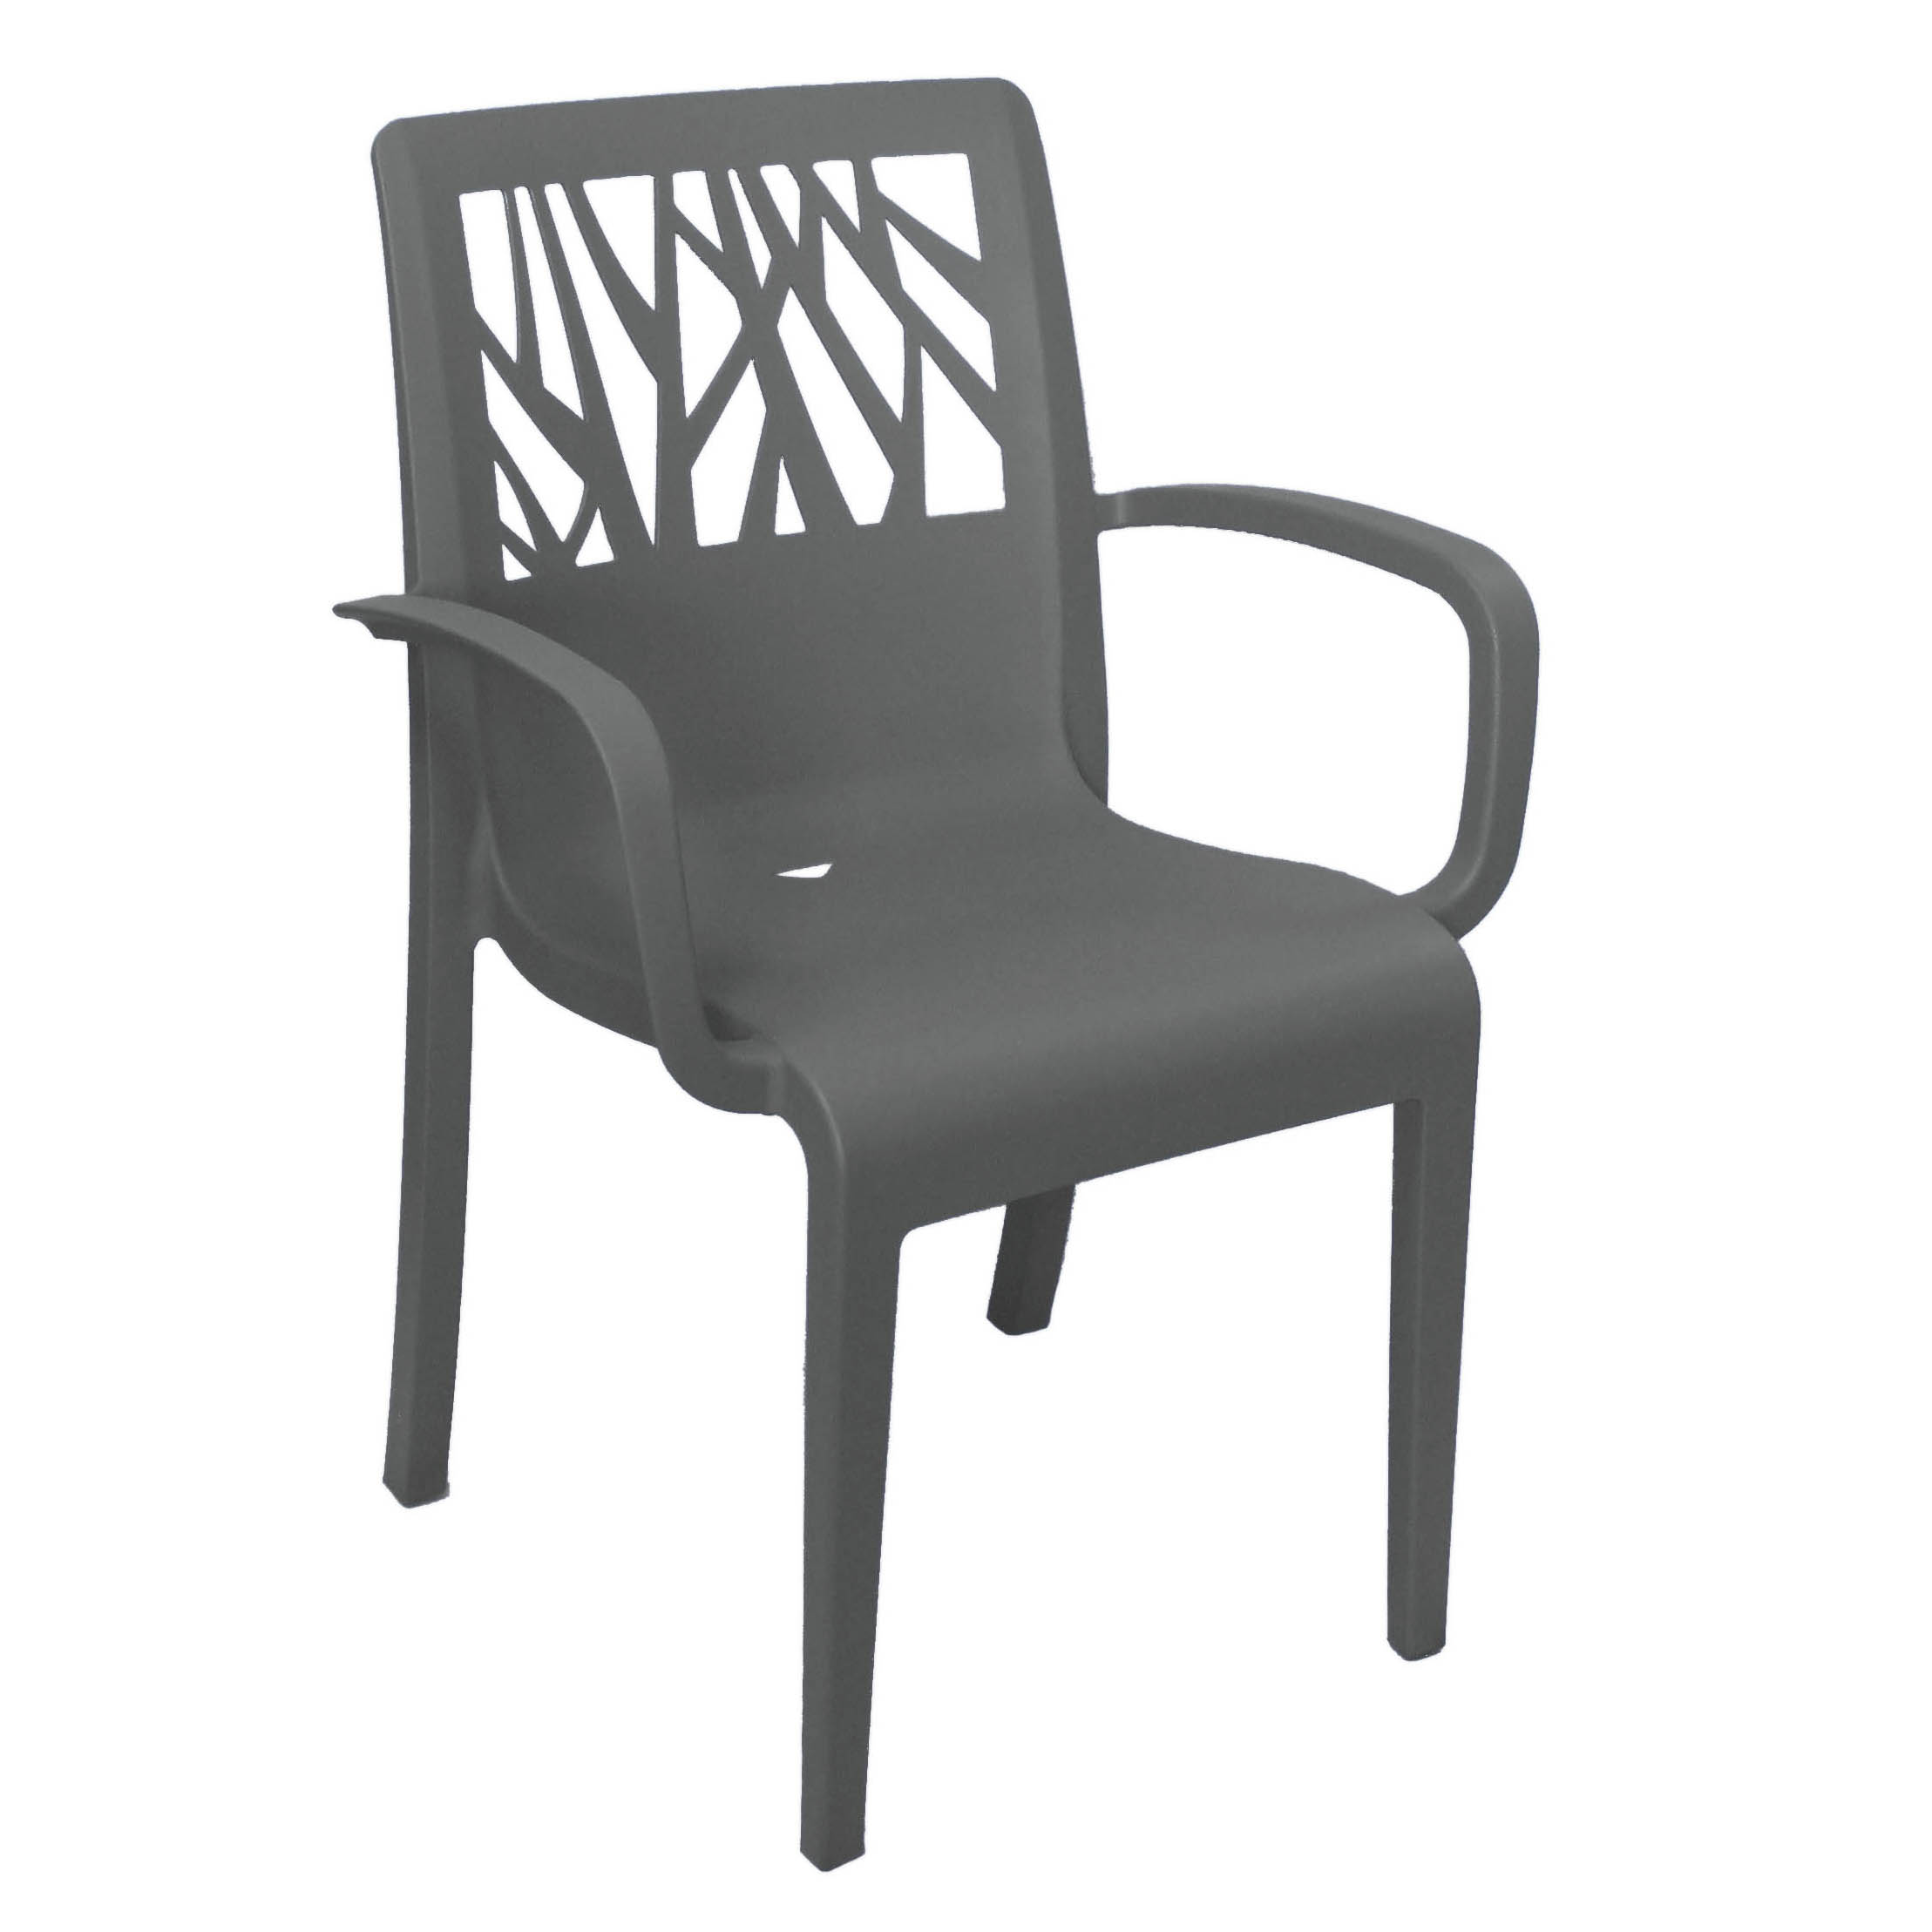 Grosfillex US201002 chair, armchair, stacking, outdoor